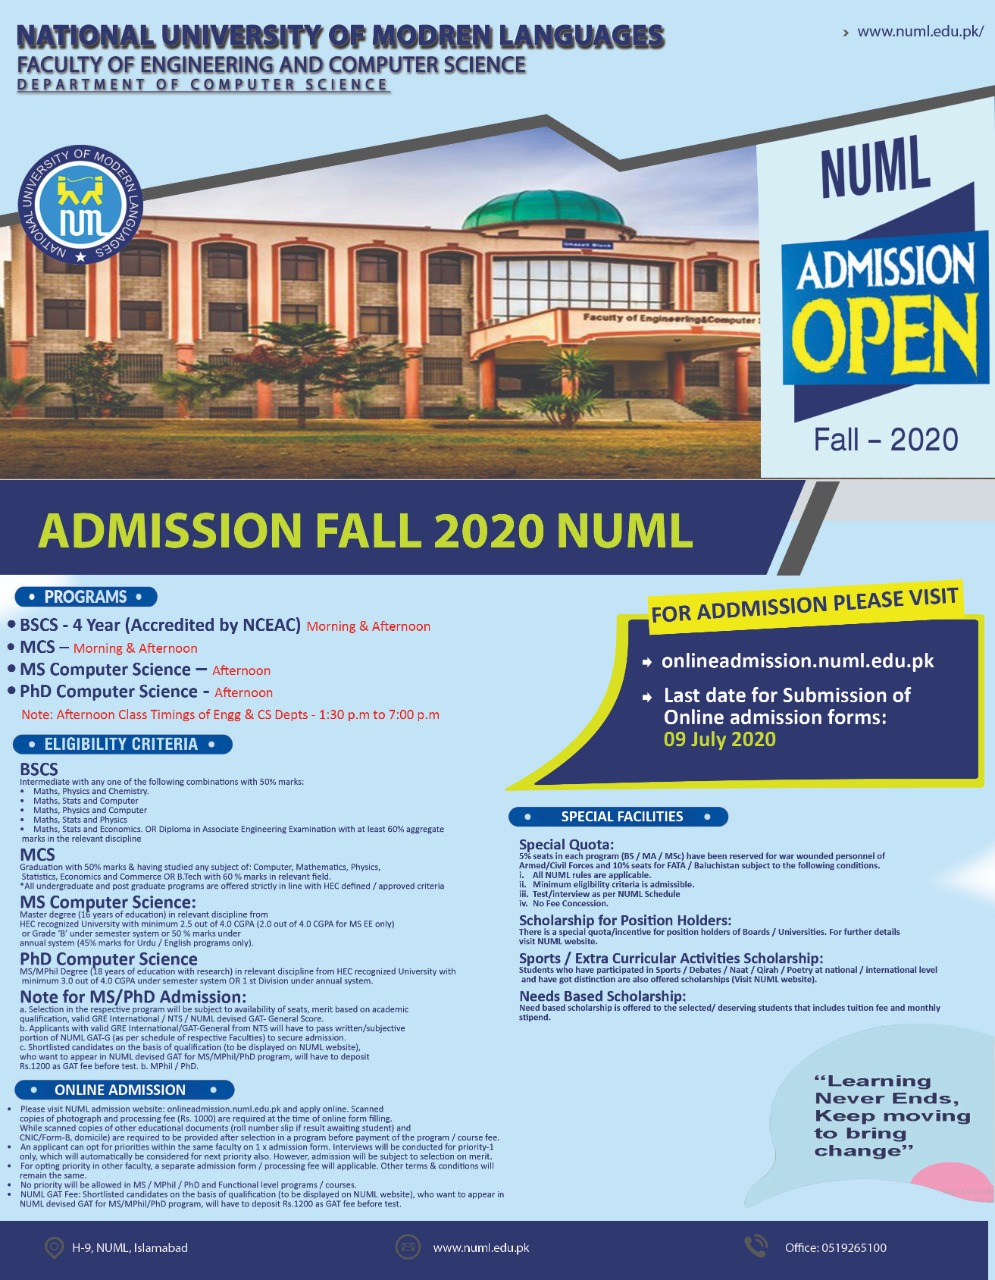 New Admissions for Fall 2020